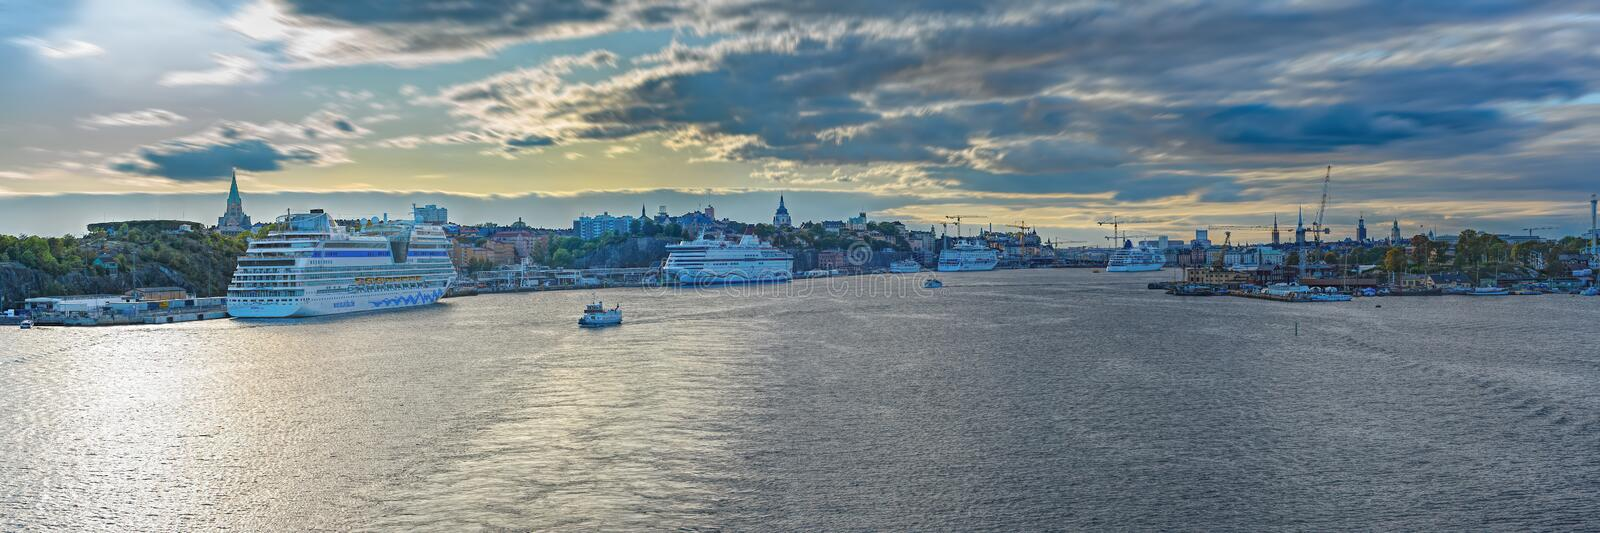 Scenic panoramic view of Stockholm`s coastline with a moored passenger ships at sunny autumn evening. Stockholm, Sweden. STOCKHOLM, SWEDEN - Sep 25, 2019: Scenic royalty free stock photography